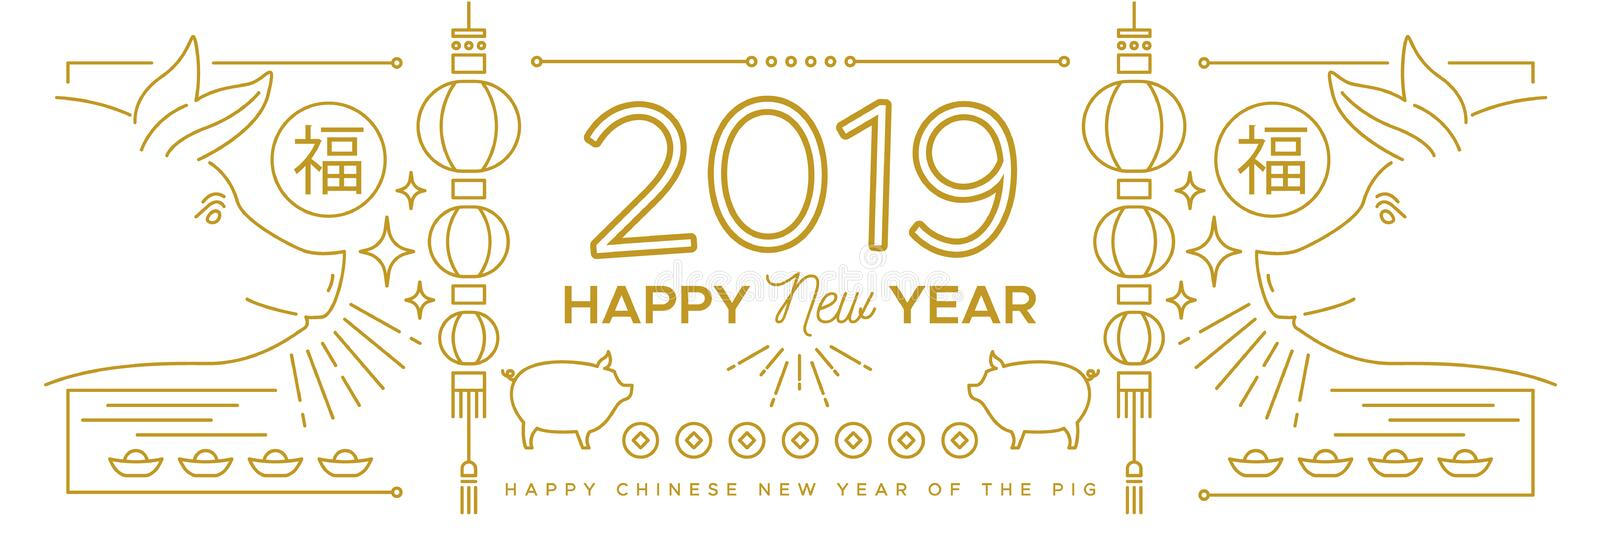 Chinese New Year of pig 2019 gold line web banner stock illustration